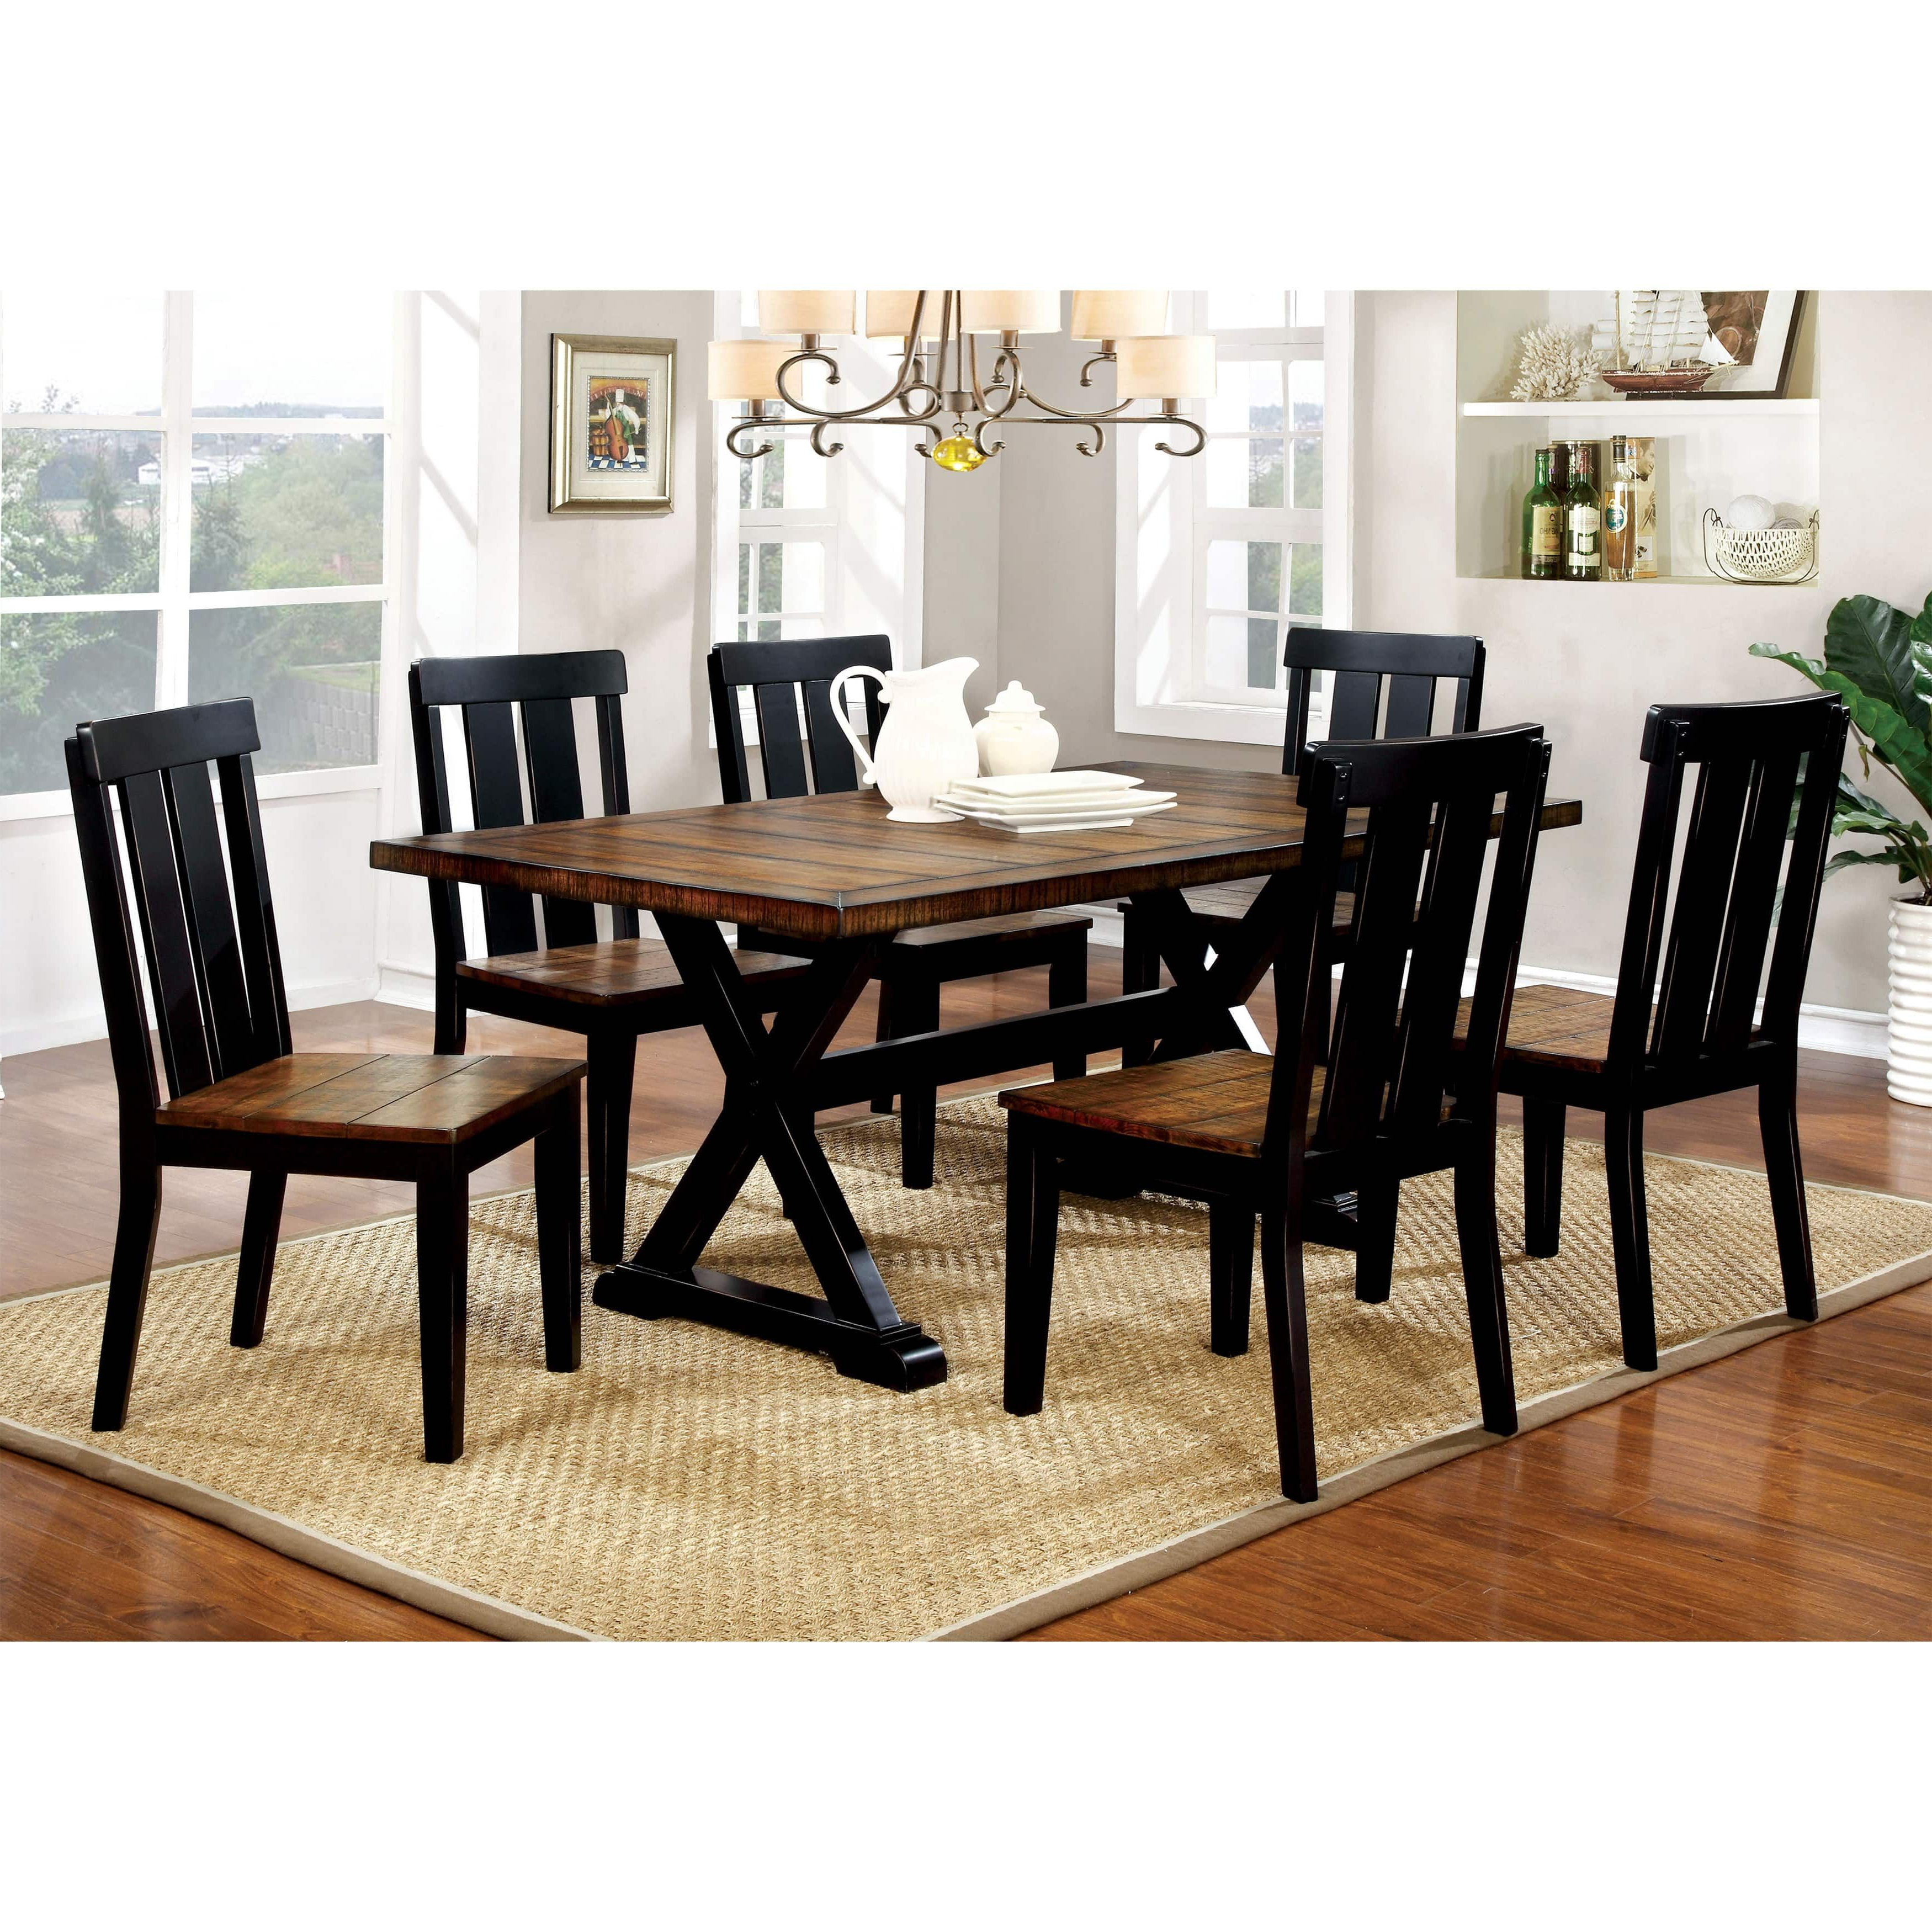 Well Liked Furniture Of America Lara Farmhouse Style 7 Piece Two Tone Antique Pertaining To Goodman 5 Piece Solid Wood Dining Sets (Set Of 5) (View 10 of 25)